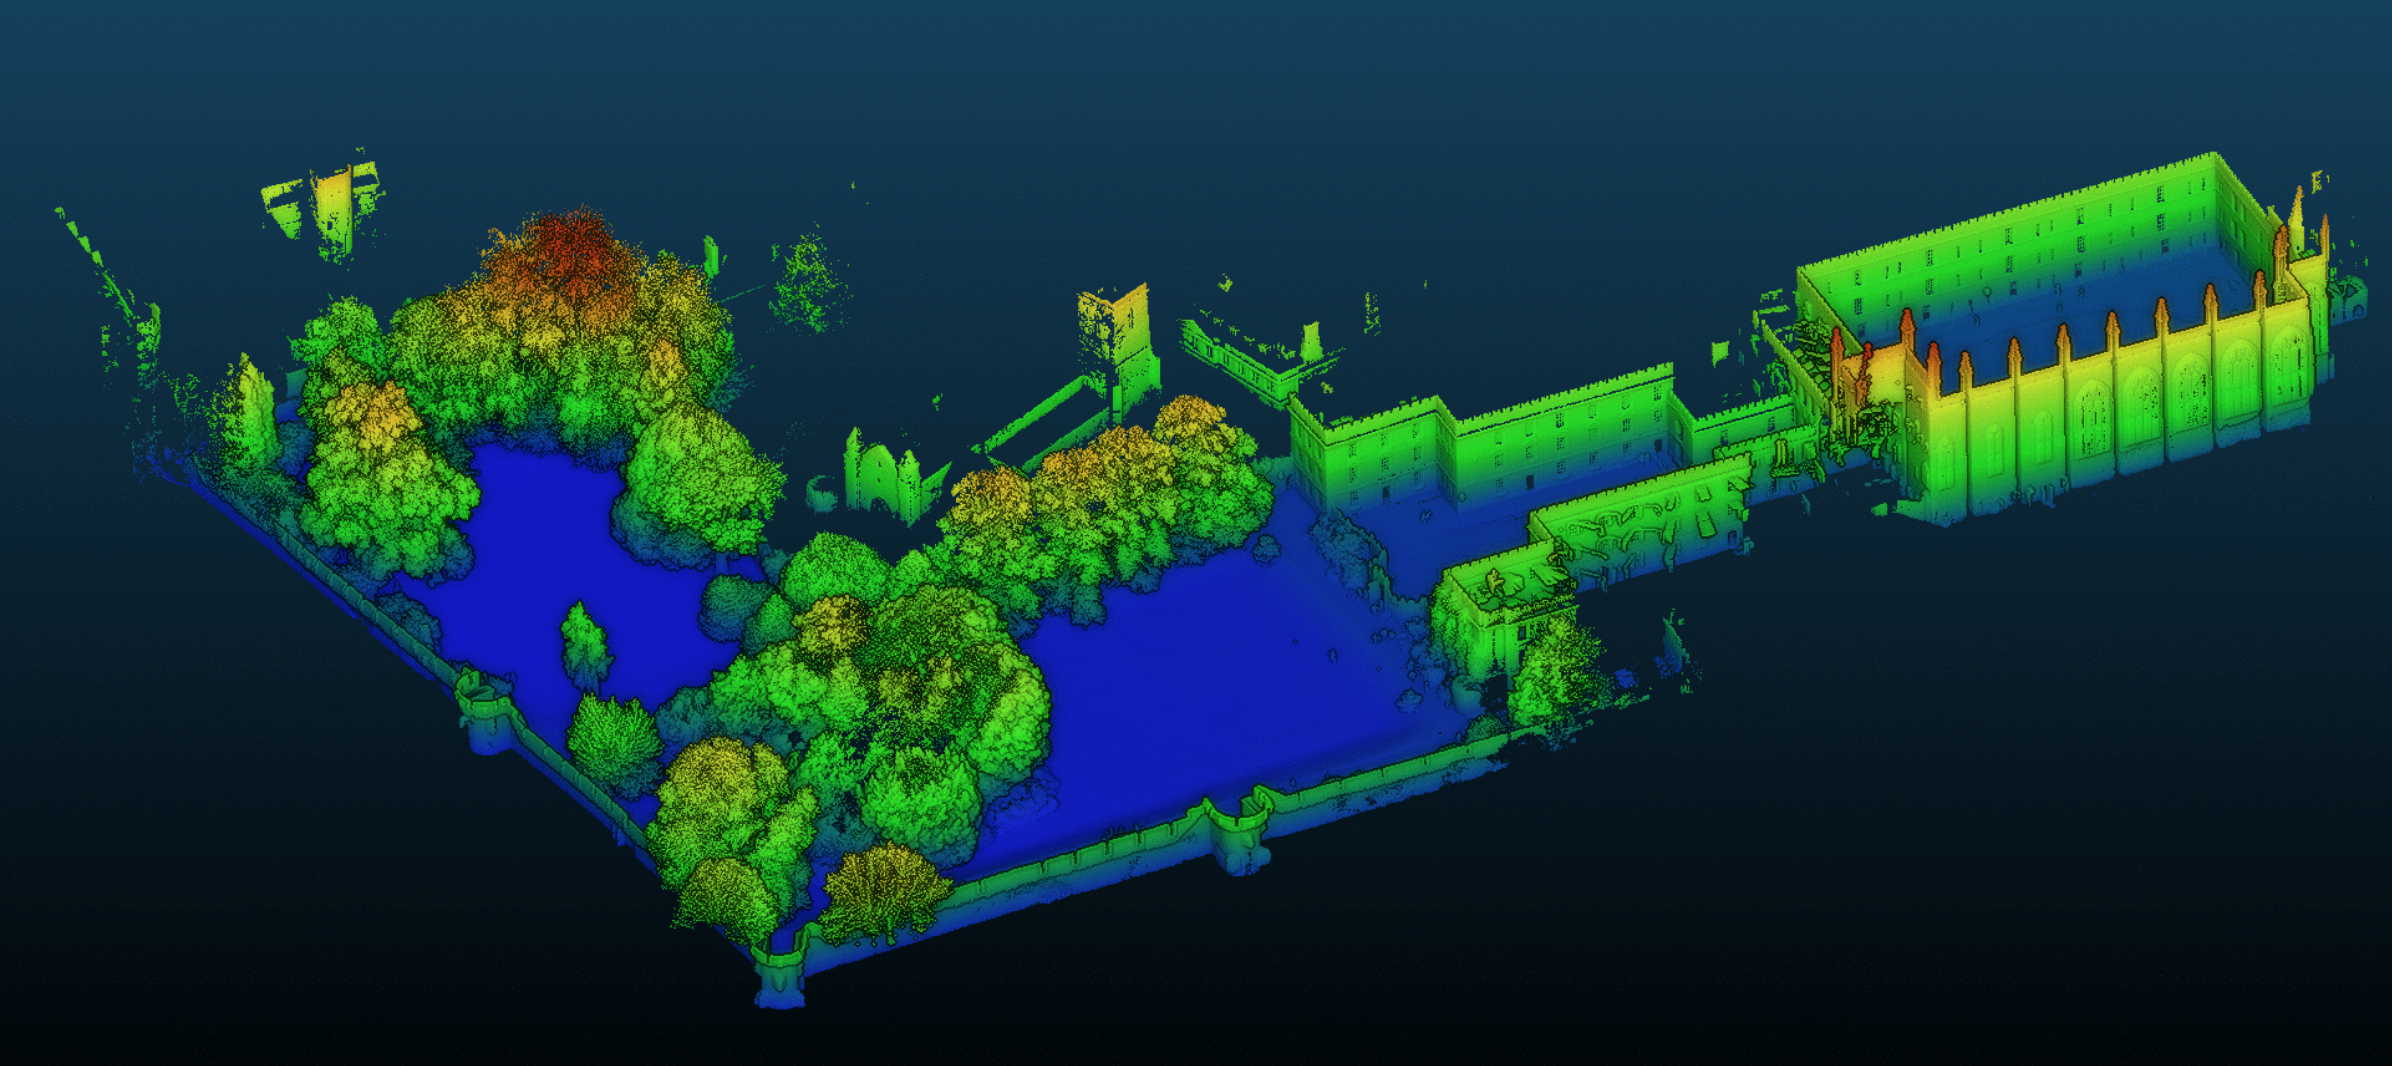 A 3D map of New College's Old Quad and Park coloured according to height